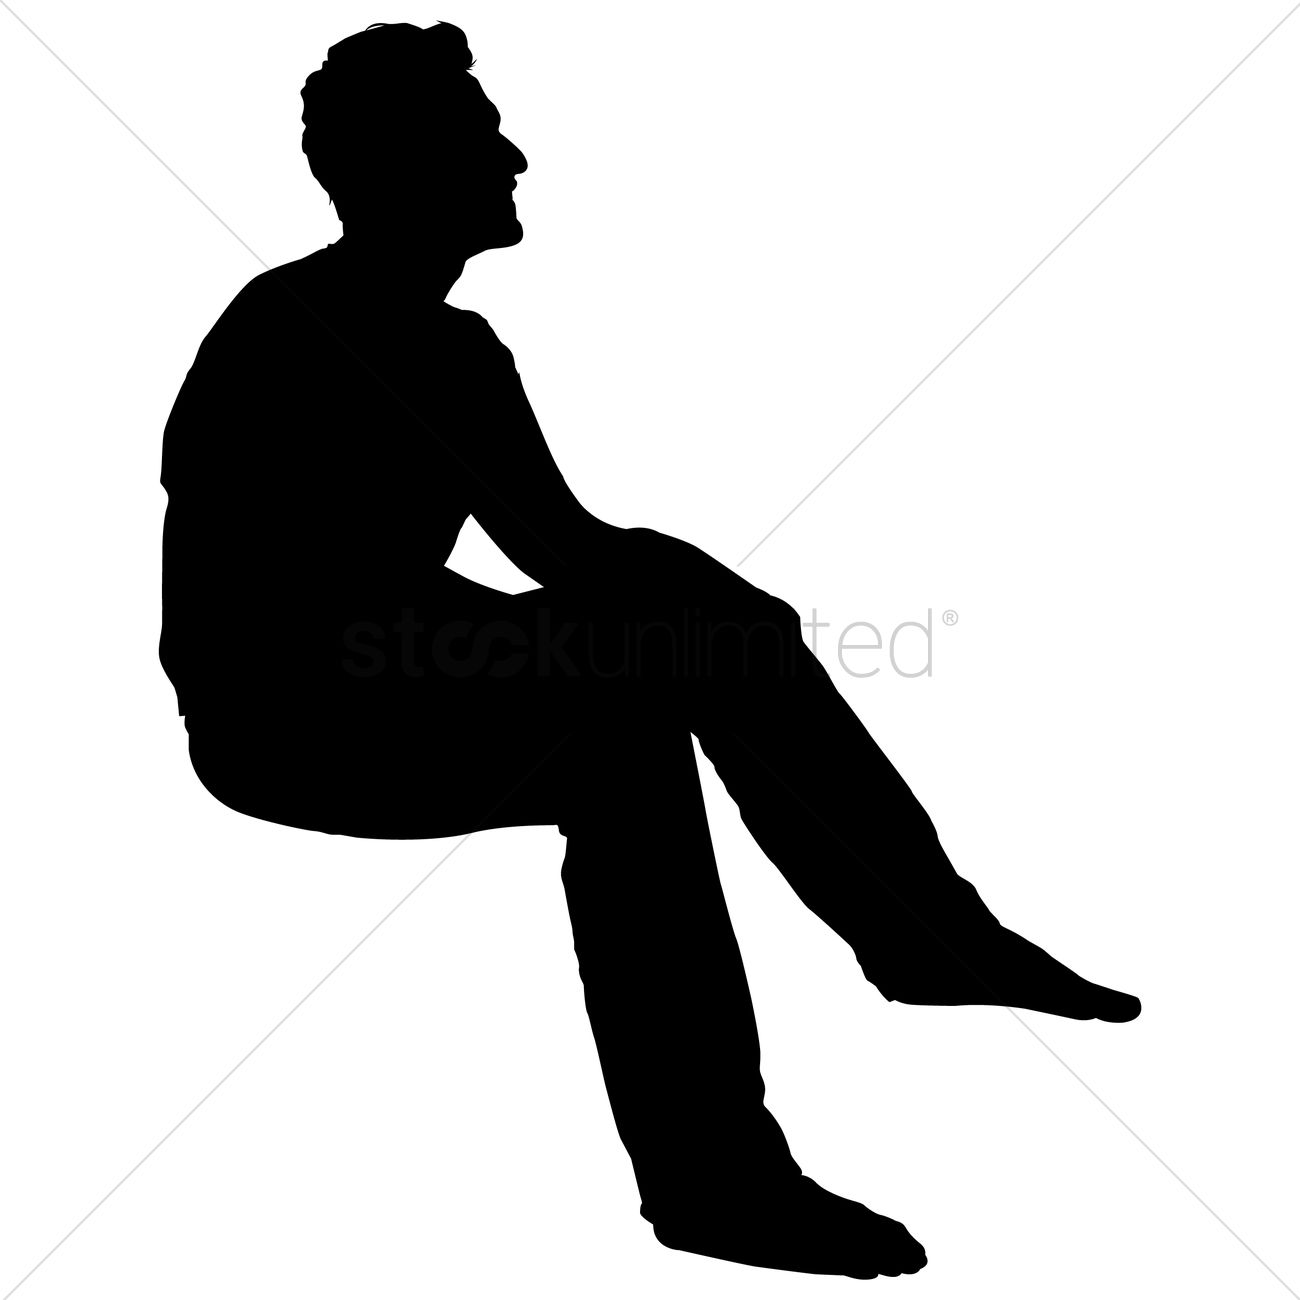 Silhouette Of A Man Sitting Vector Image - 1455958 ...